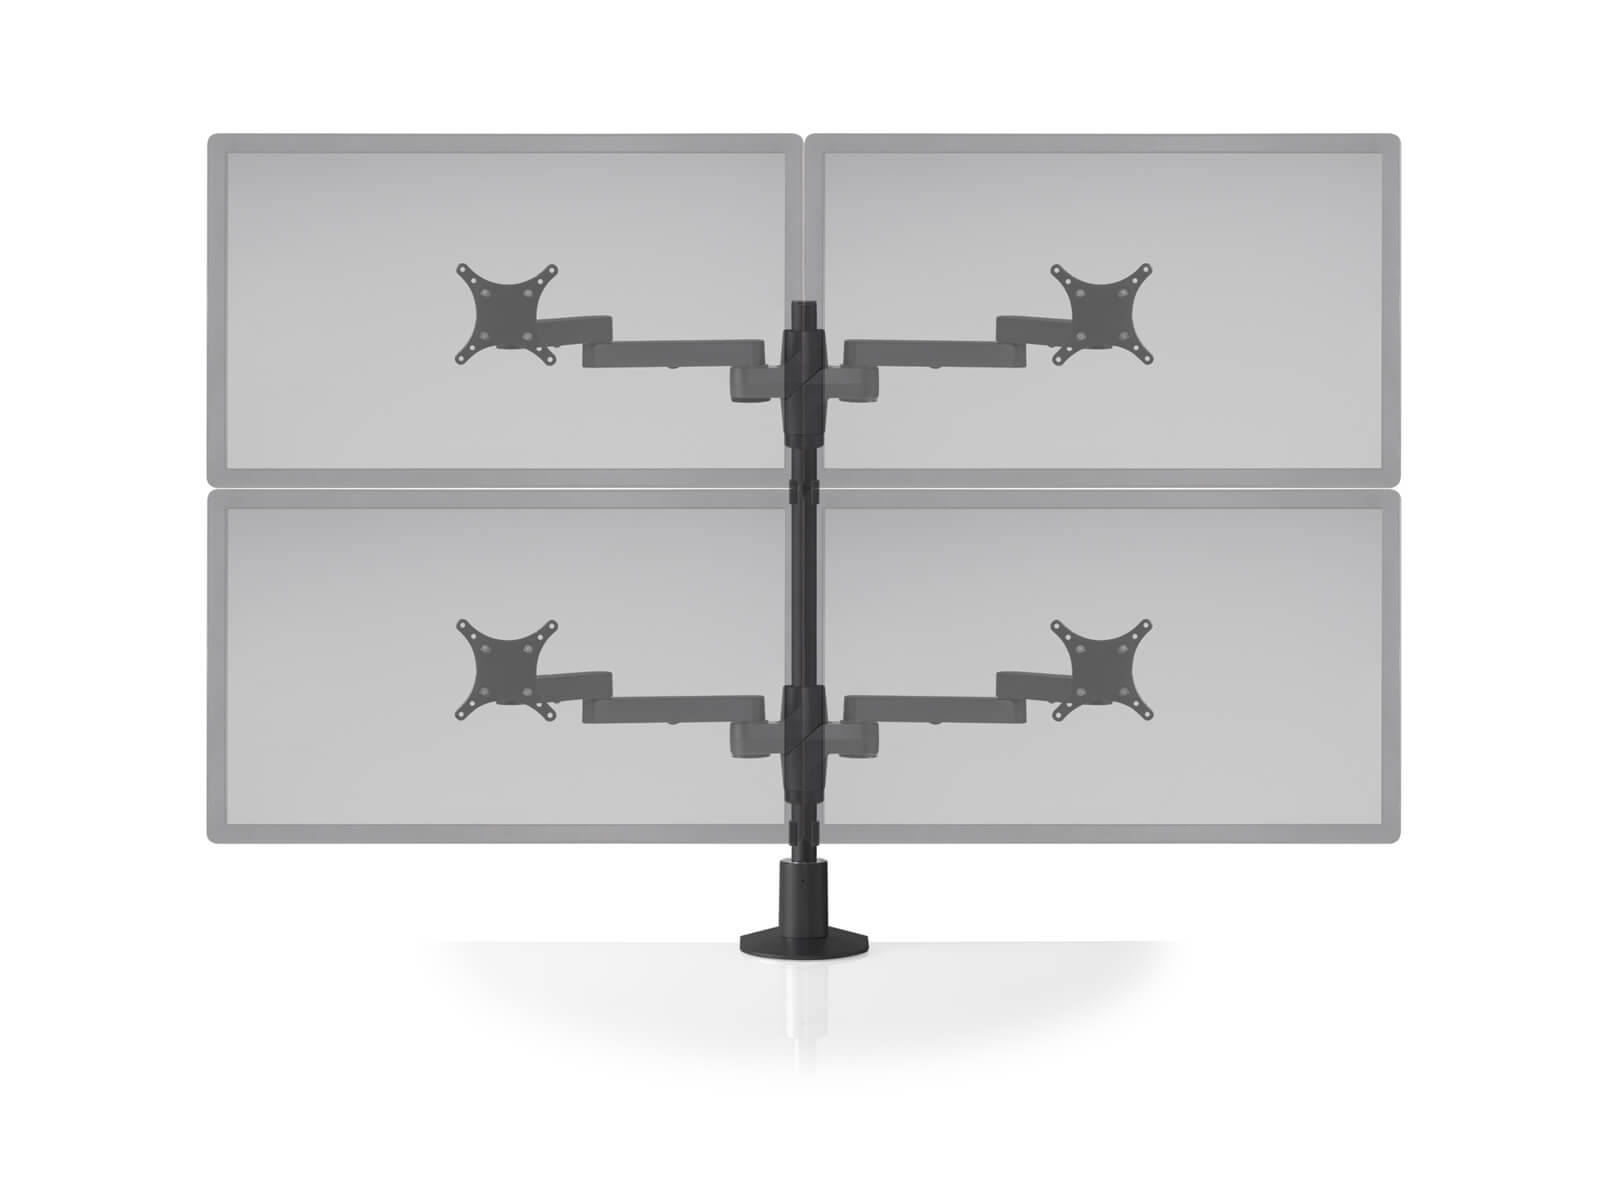 Customized Monitor Mounts for Process Control